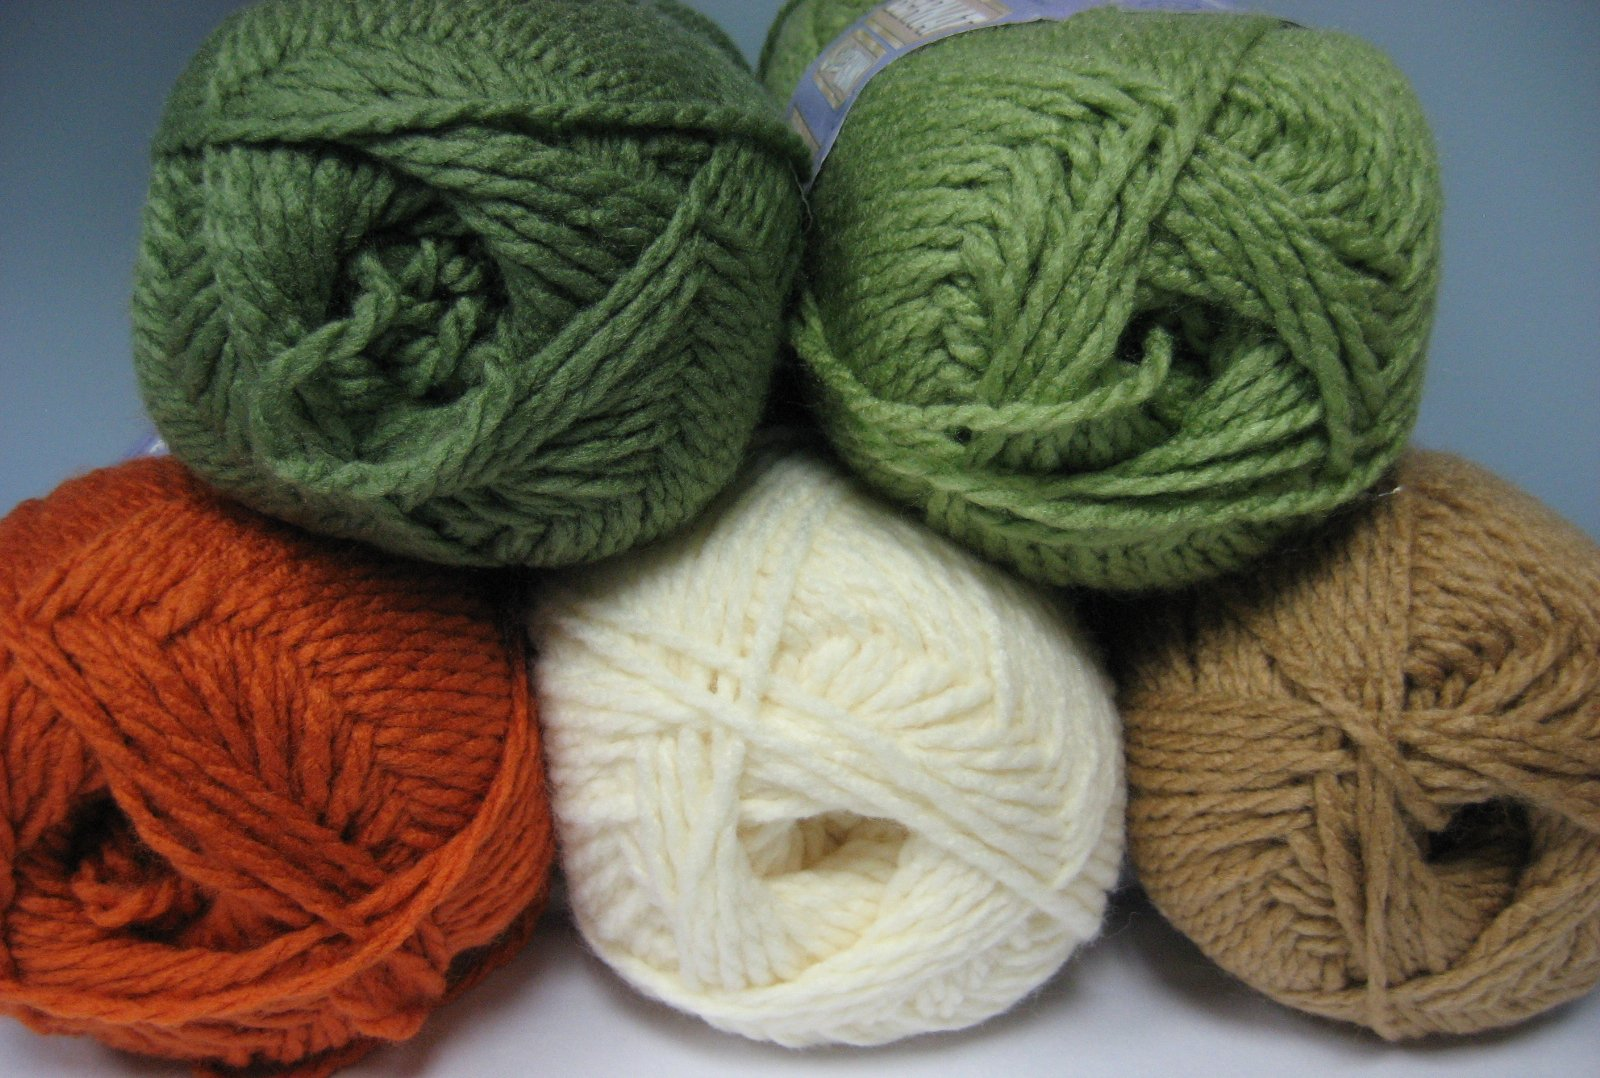 Crocheting Pronunciation : All except the pumpkin colored yarn these are the colors that were